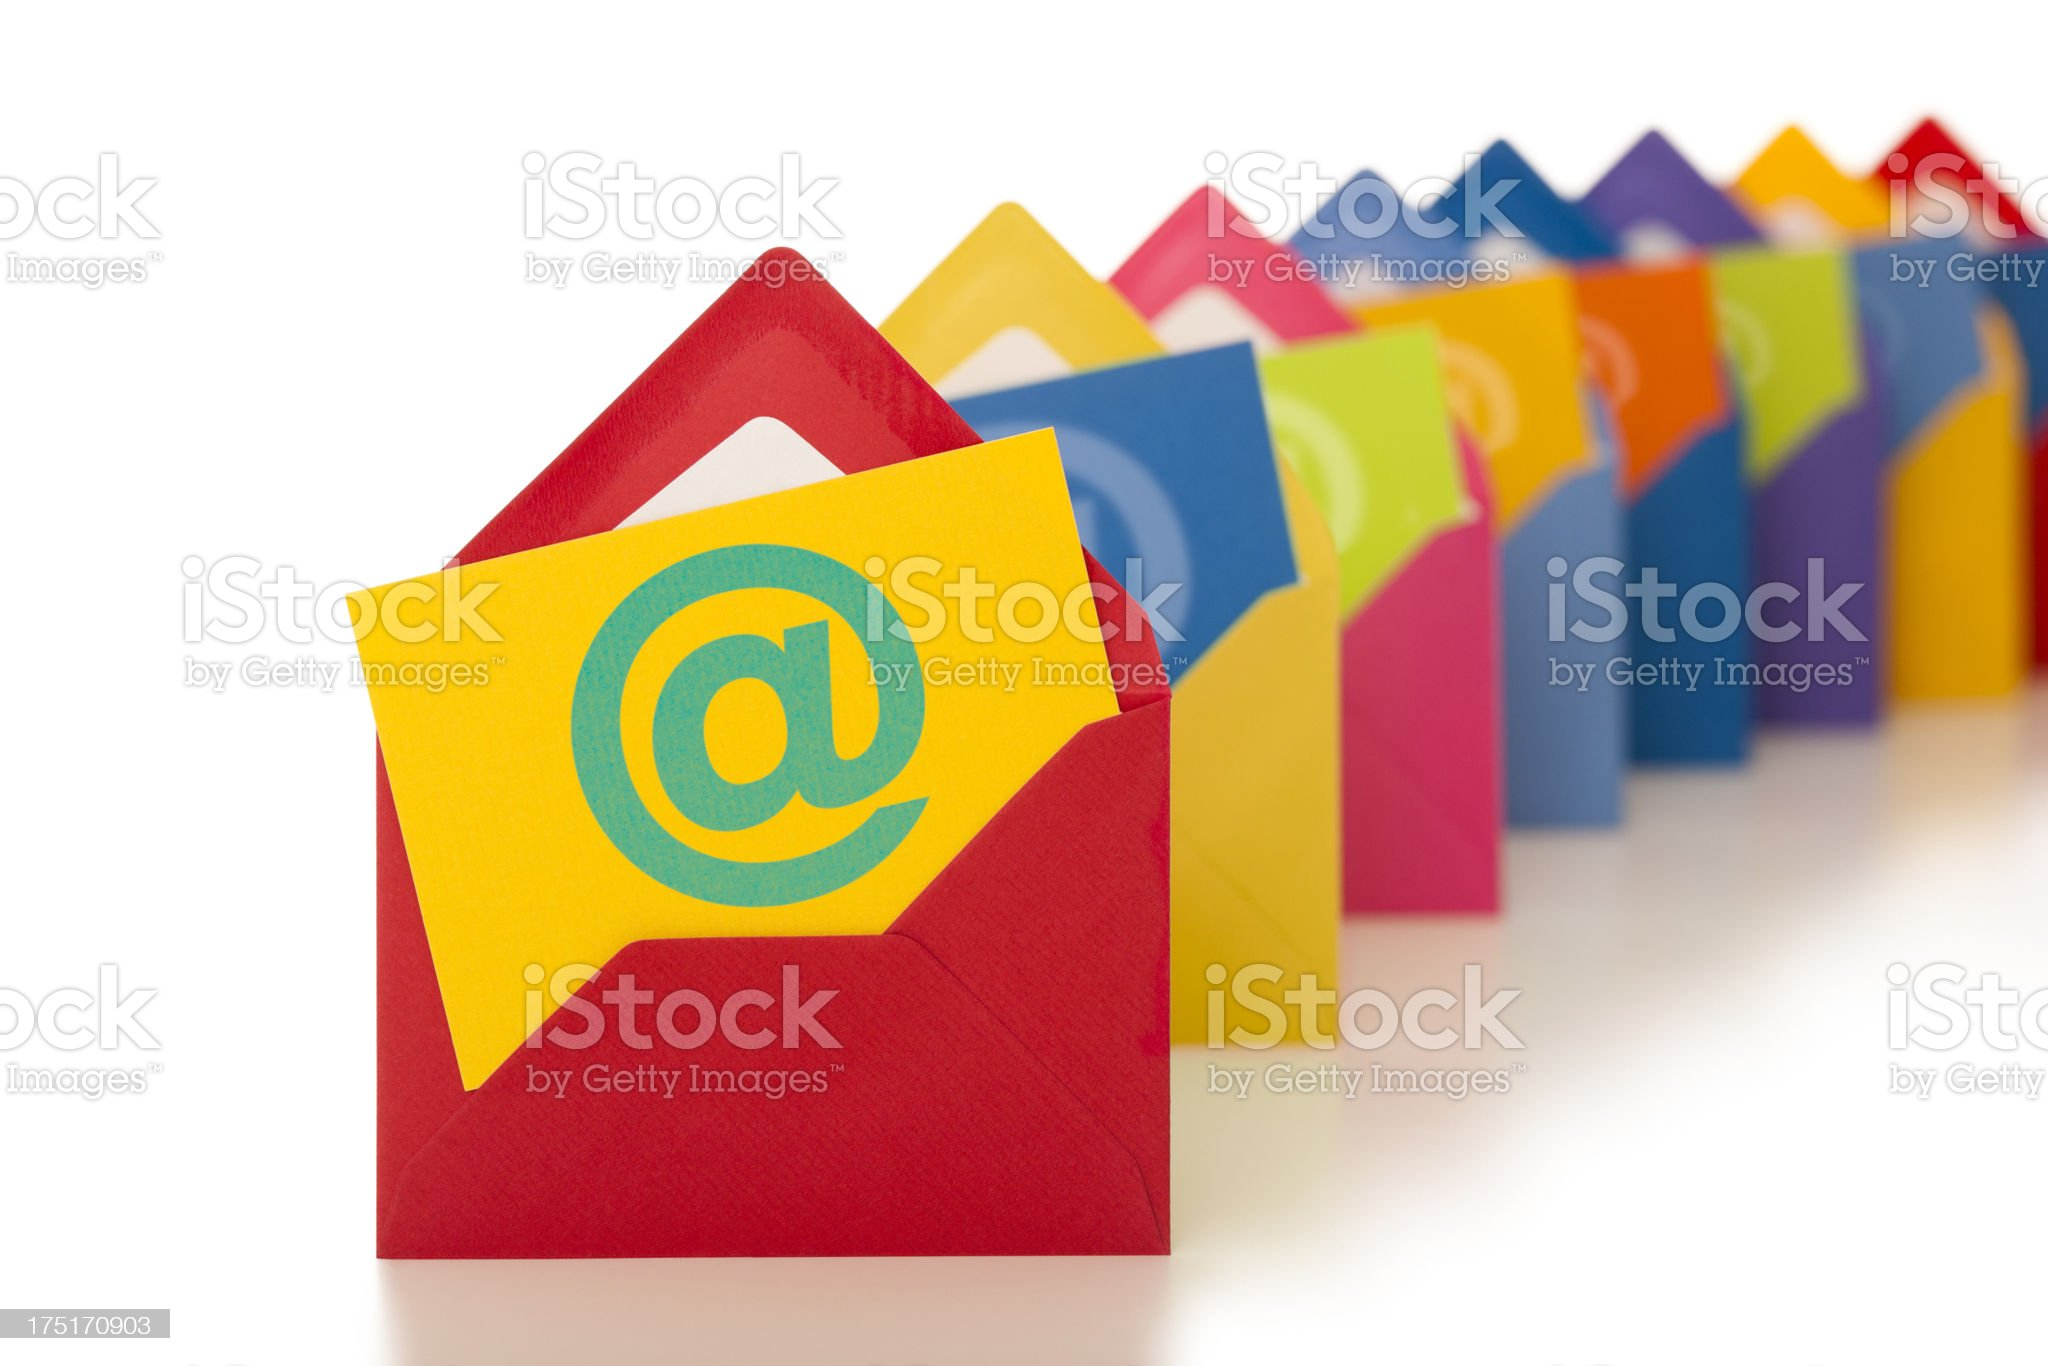 email symbol on row of colourful envelopes royalty-free stock photo